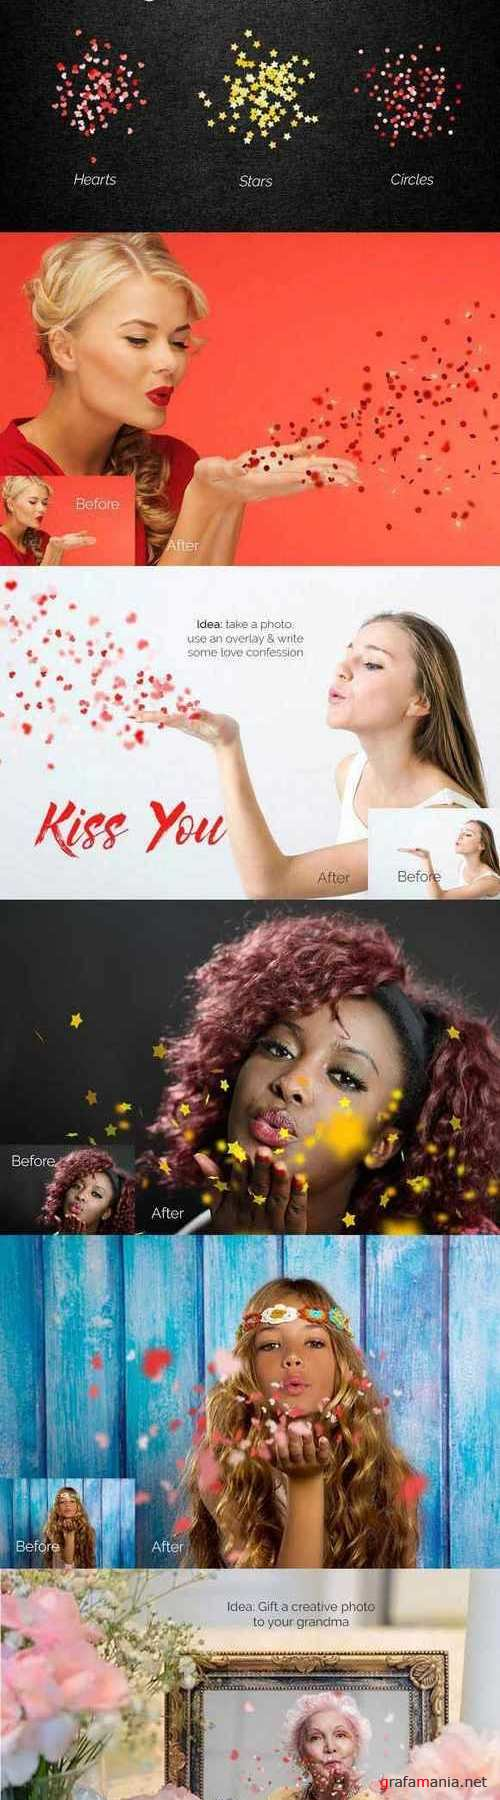 28 Blowing kisses Photoshop Overlays 1721357